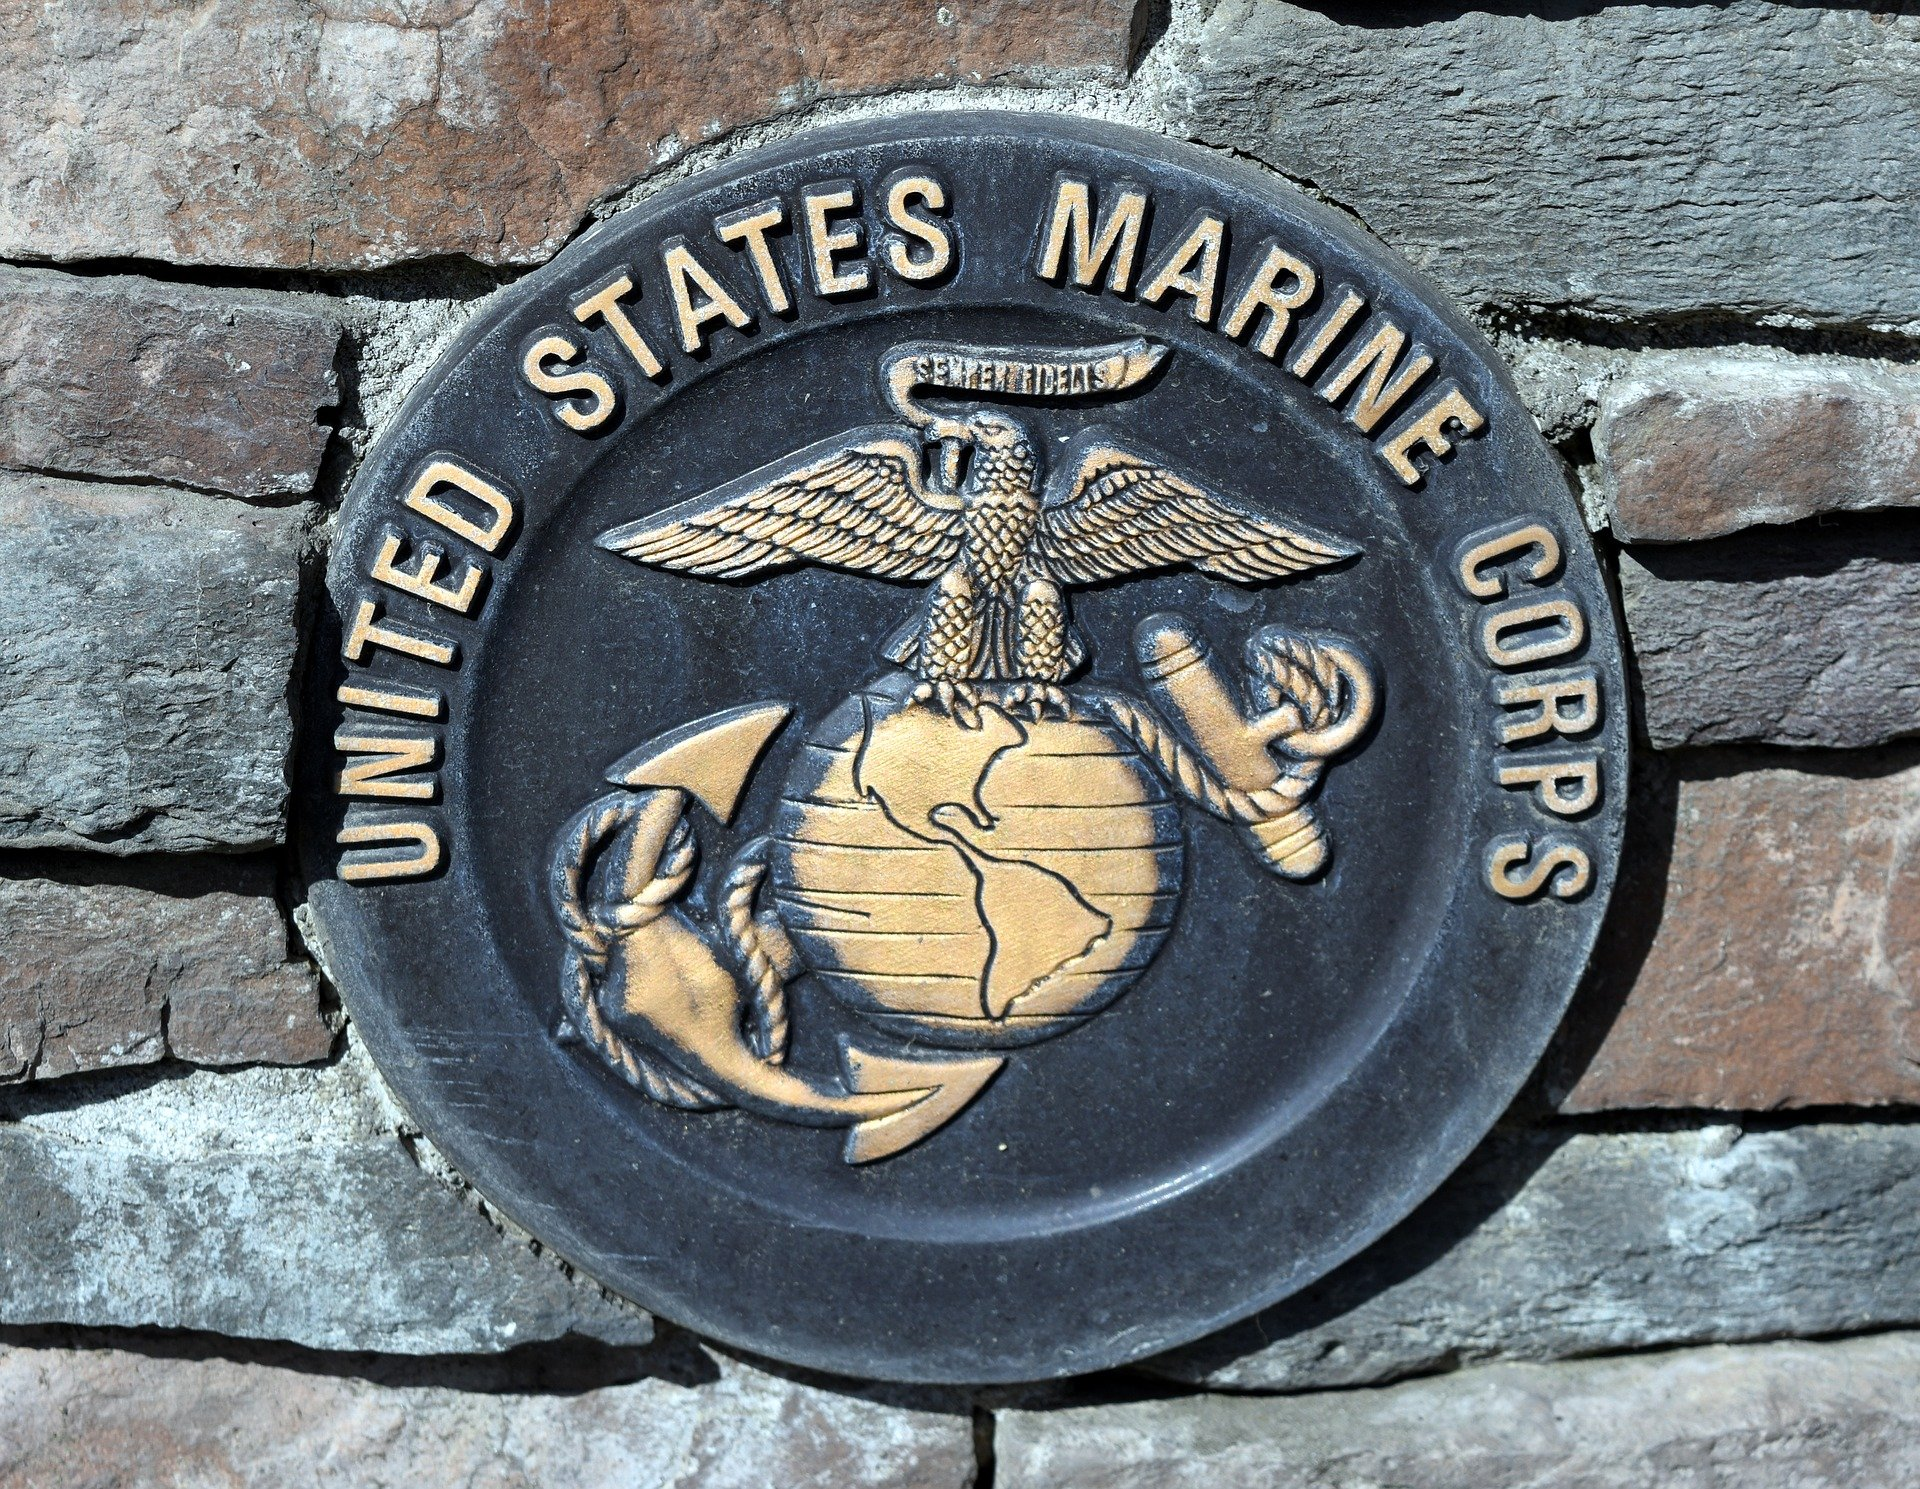 United States Marine Corps Commemorative Plaque | Veteran Car Donations